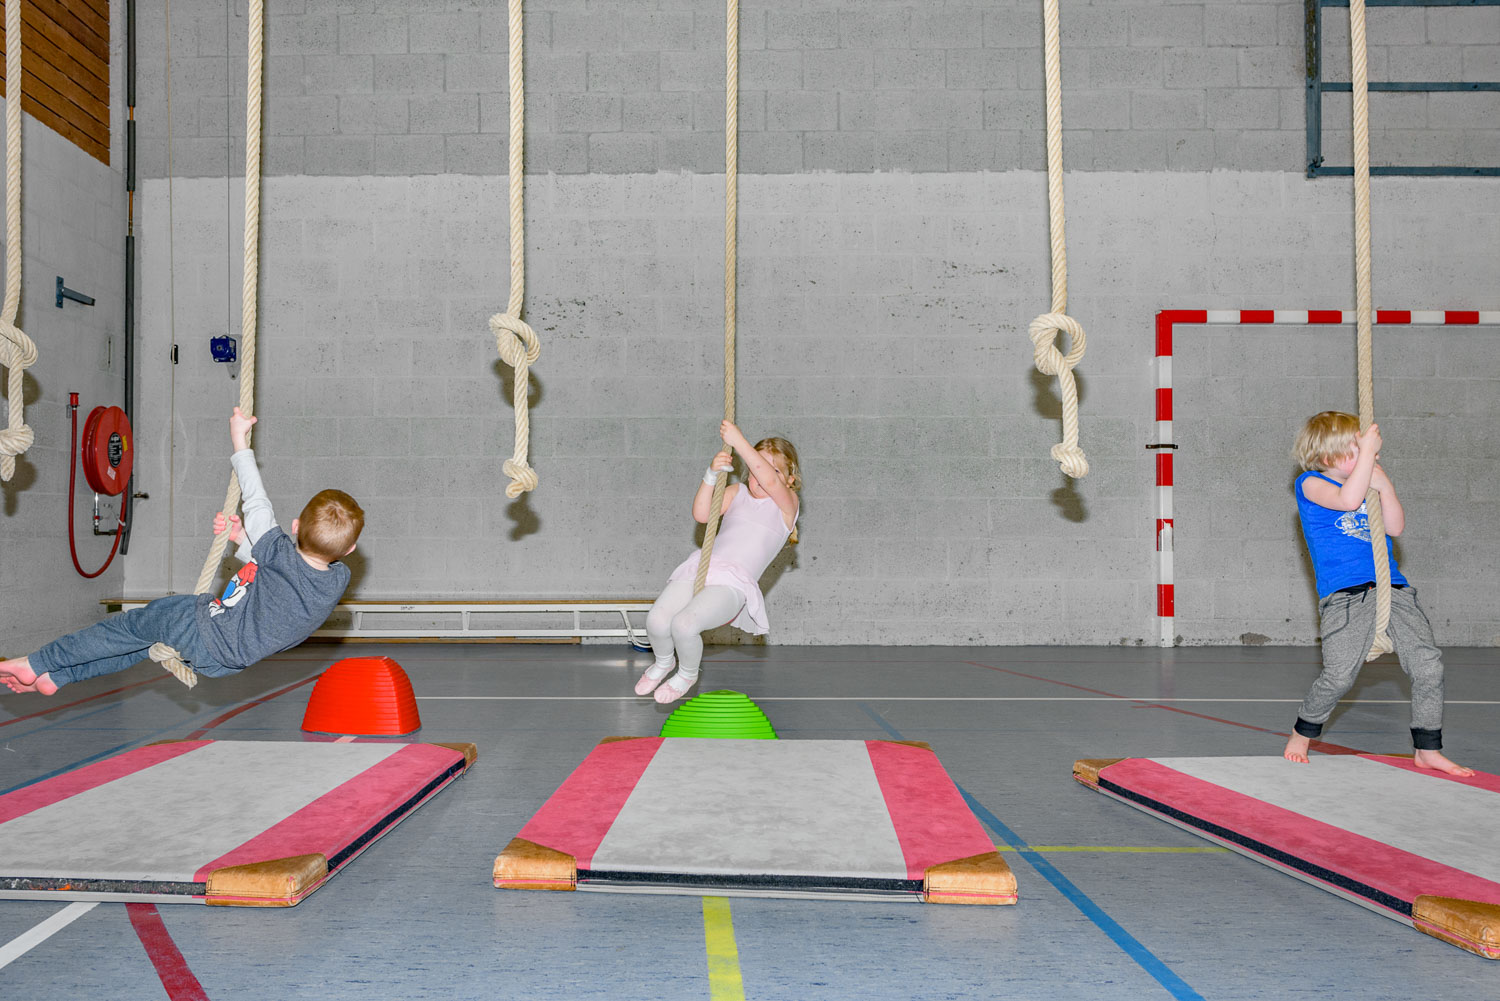 20180307_Abcoude_Sporthuis